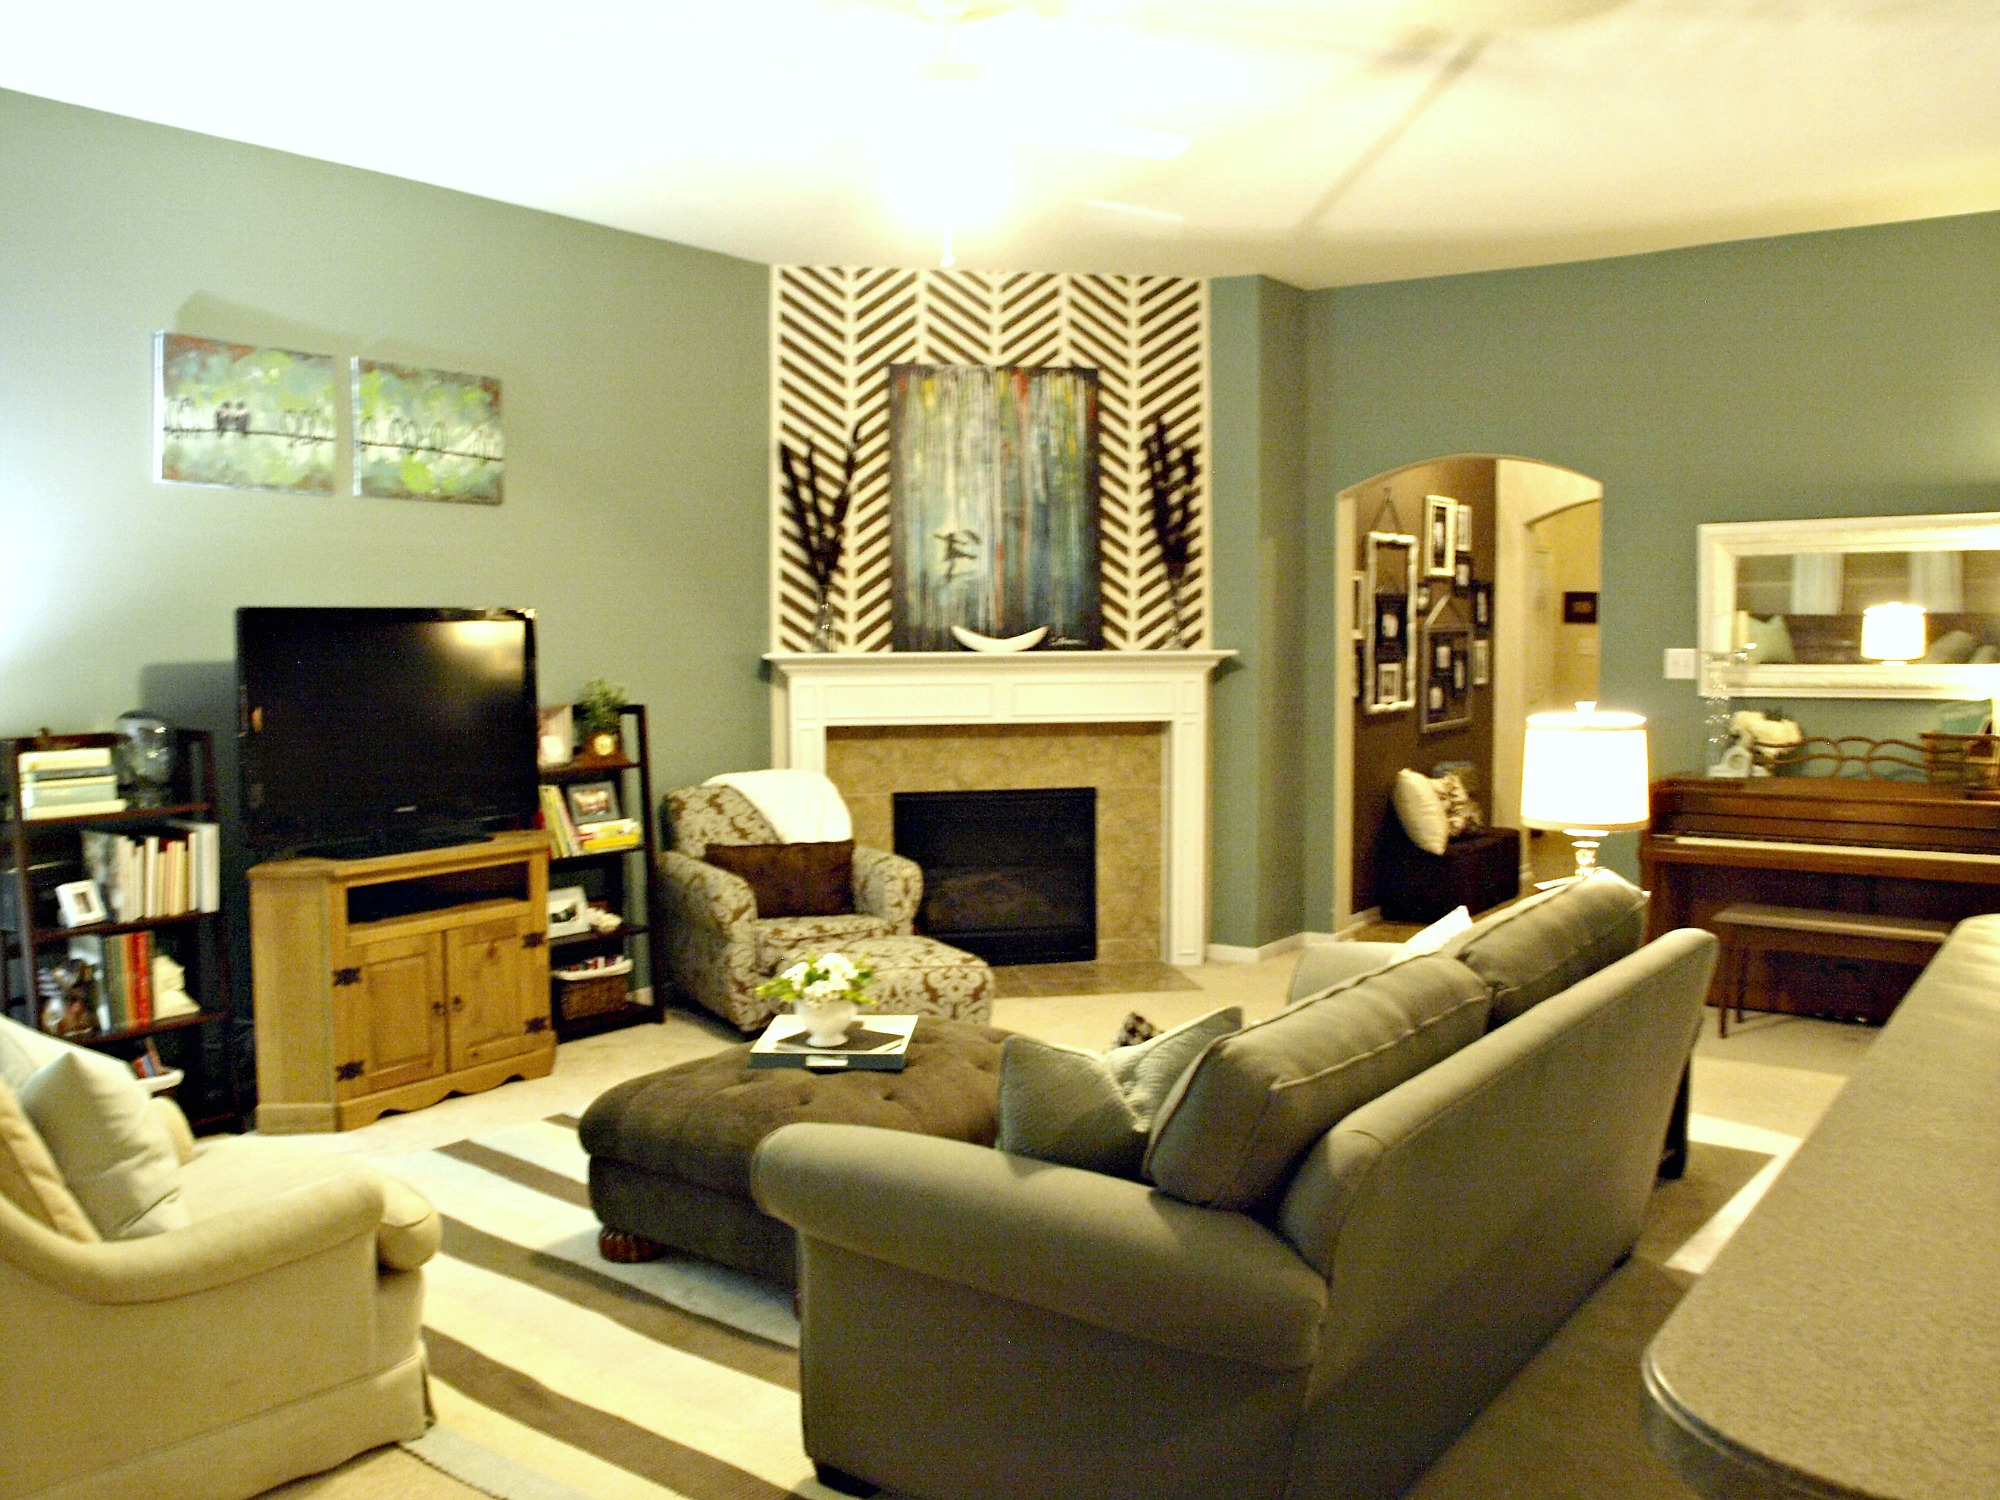 my livingroom see cate create 187 inspiring you to live creativelydiy faux